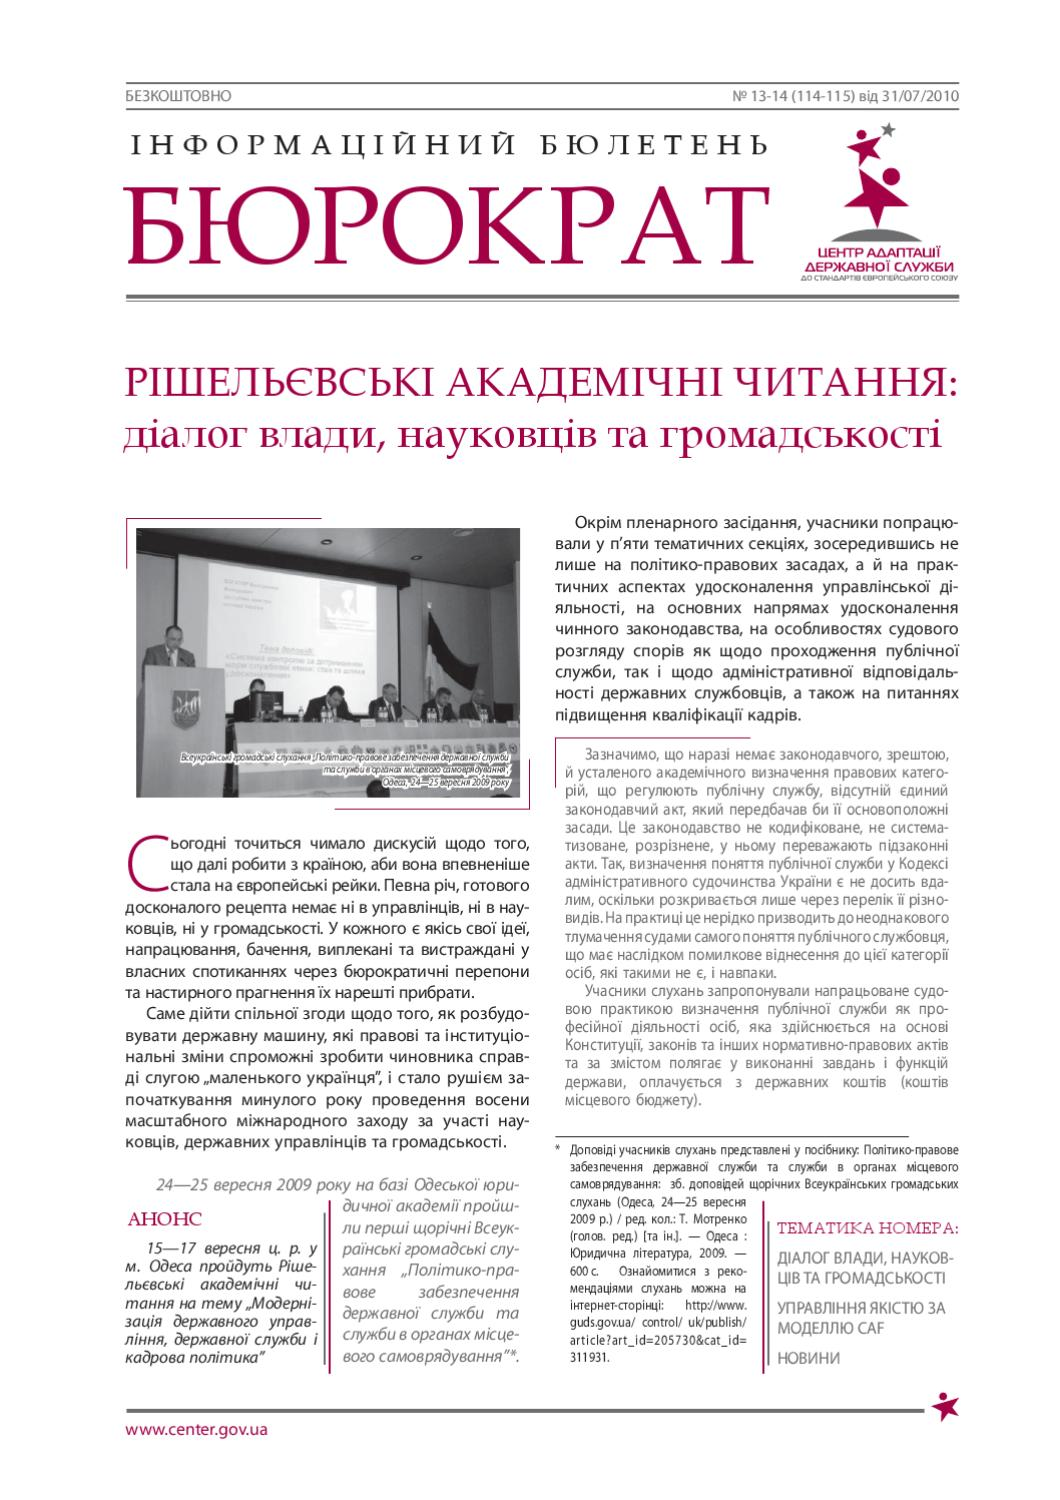 information bulletin bureaucrat 13 14 2010 by center for adaptation of the civil service to. Black Bedroom Furniture Sets. Home Design Ideas